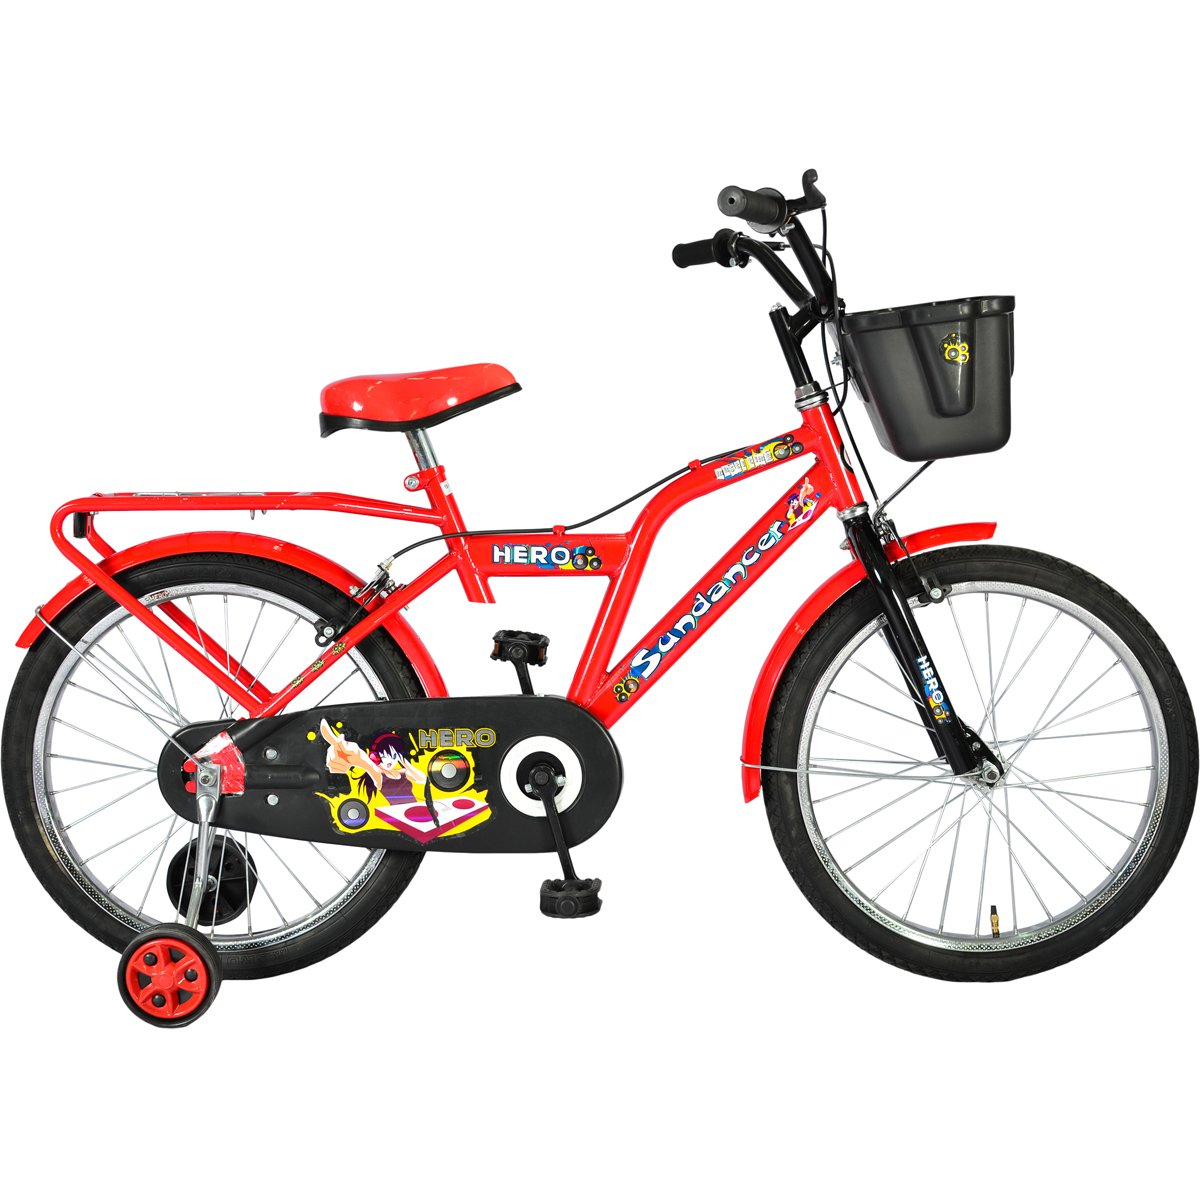 Hero Sundancer 20T Hi Riser Junior Bike 14 inches  Pink/Red